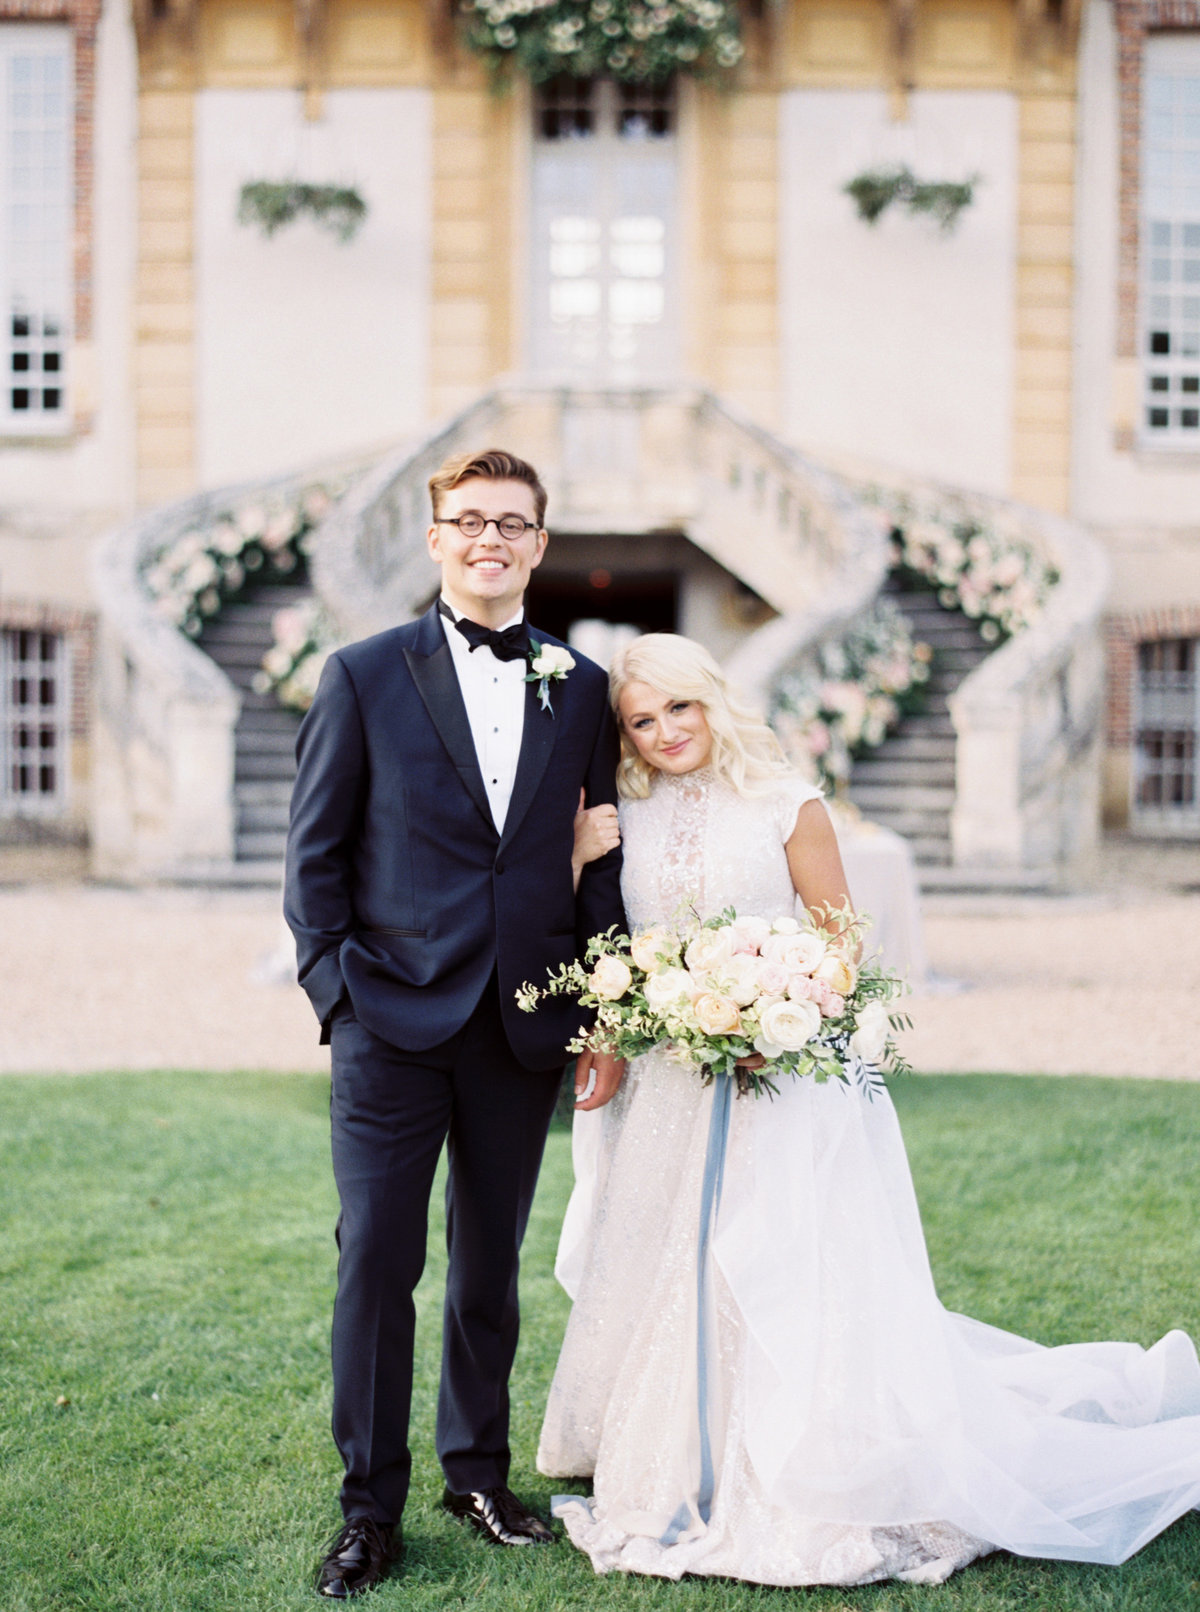 Paris France Wedding - Mary Claire Photography-44